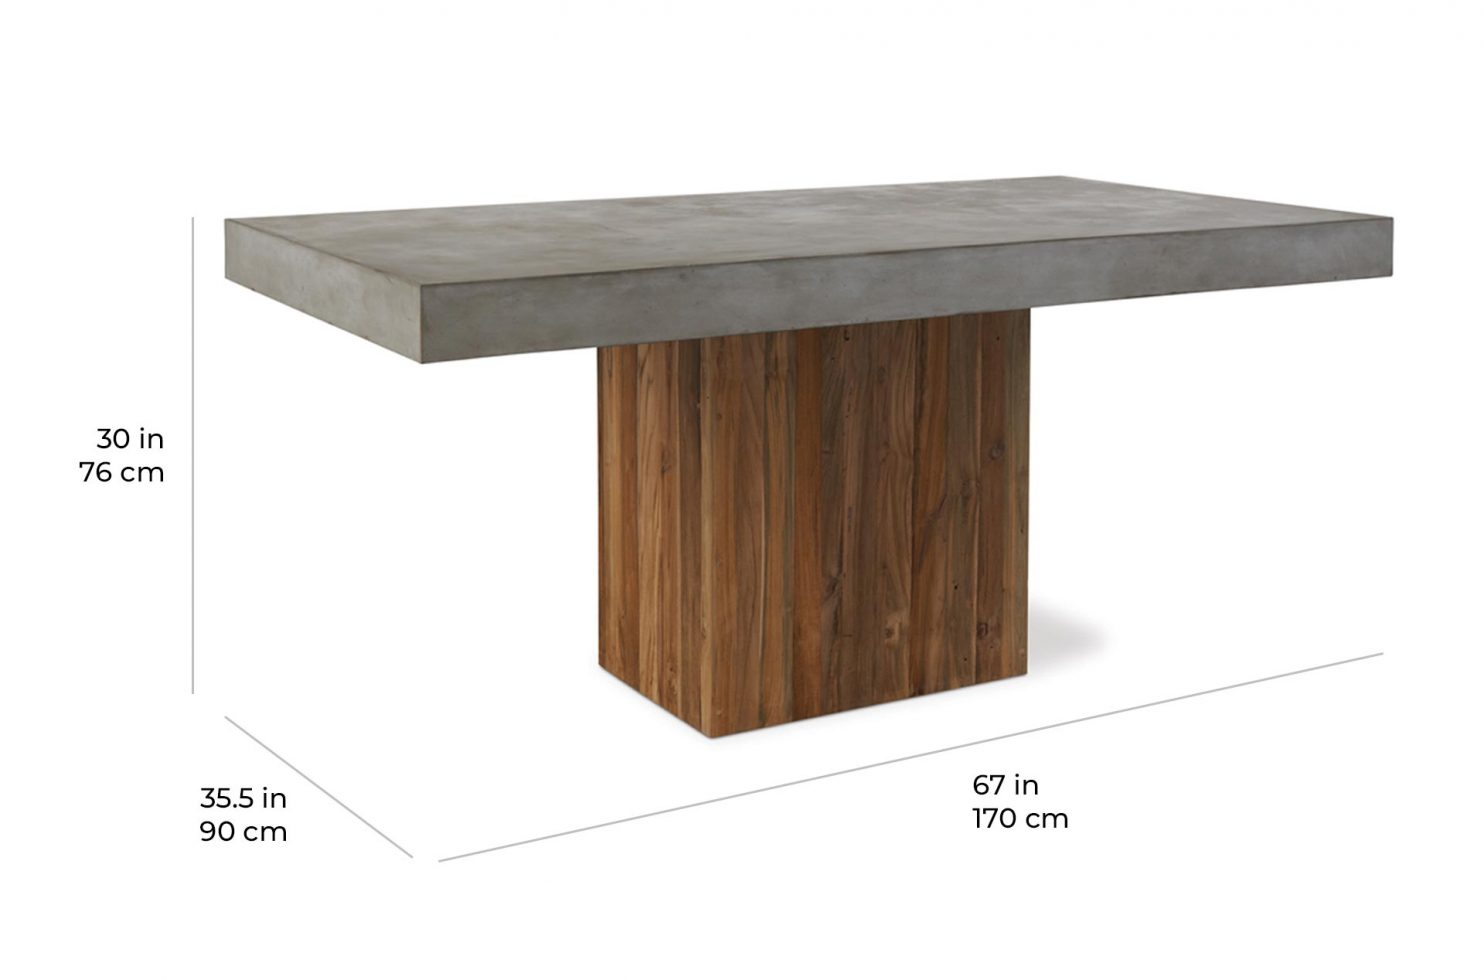 perp sparta table 501FT043P2 scale dims